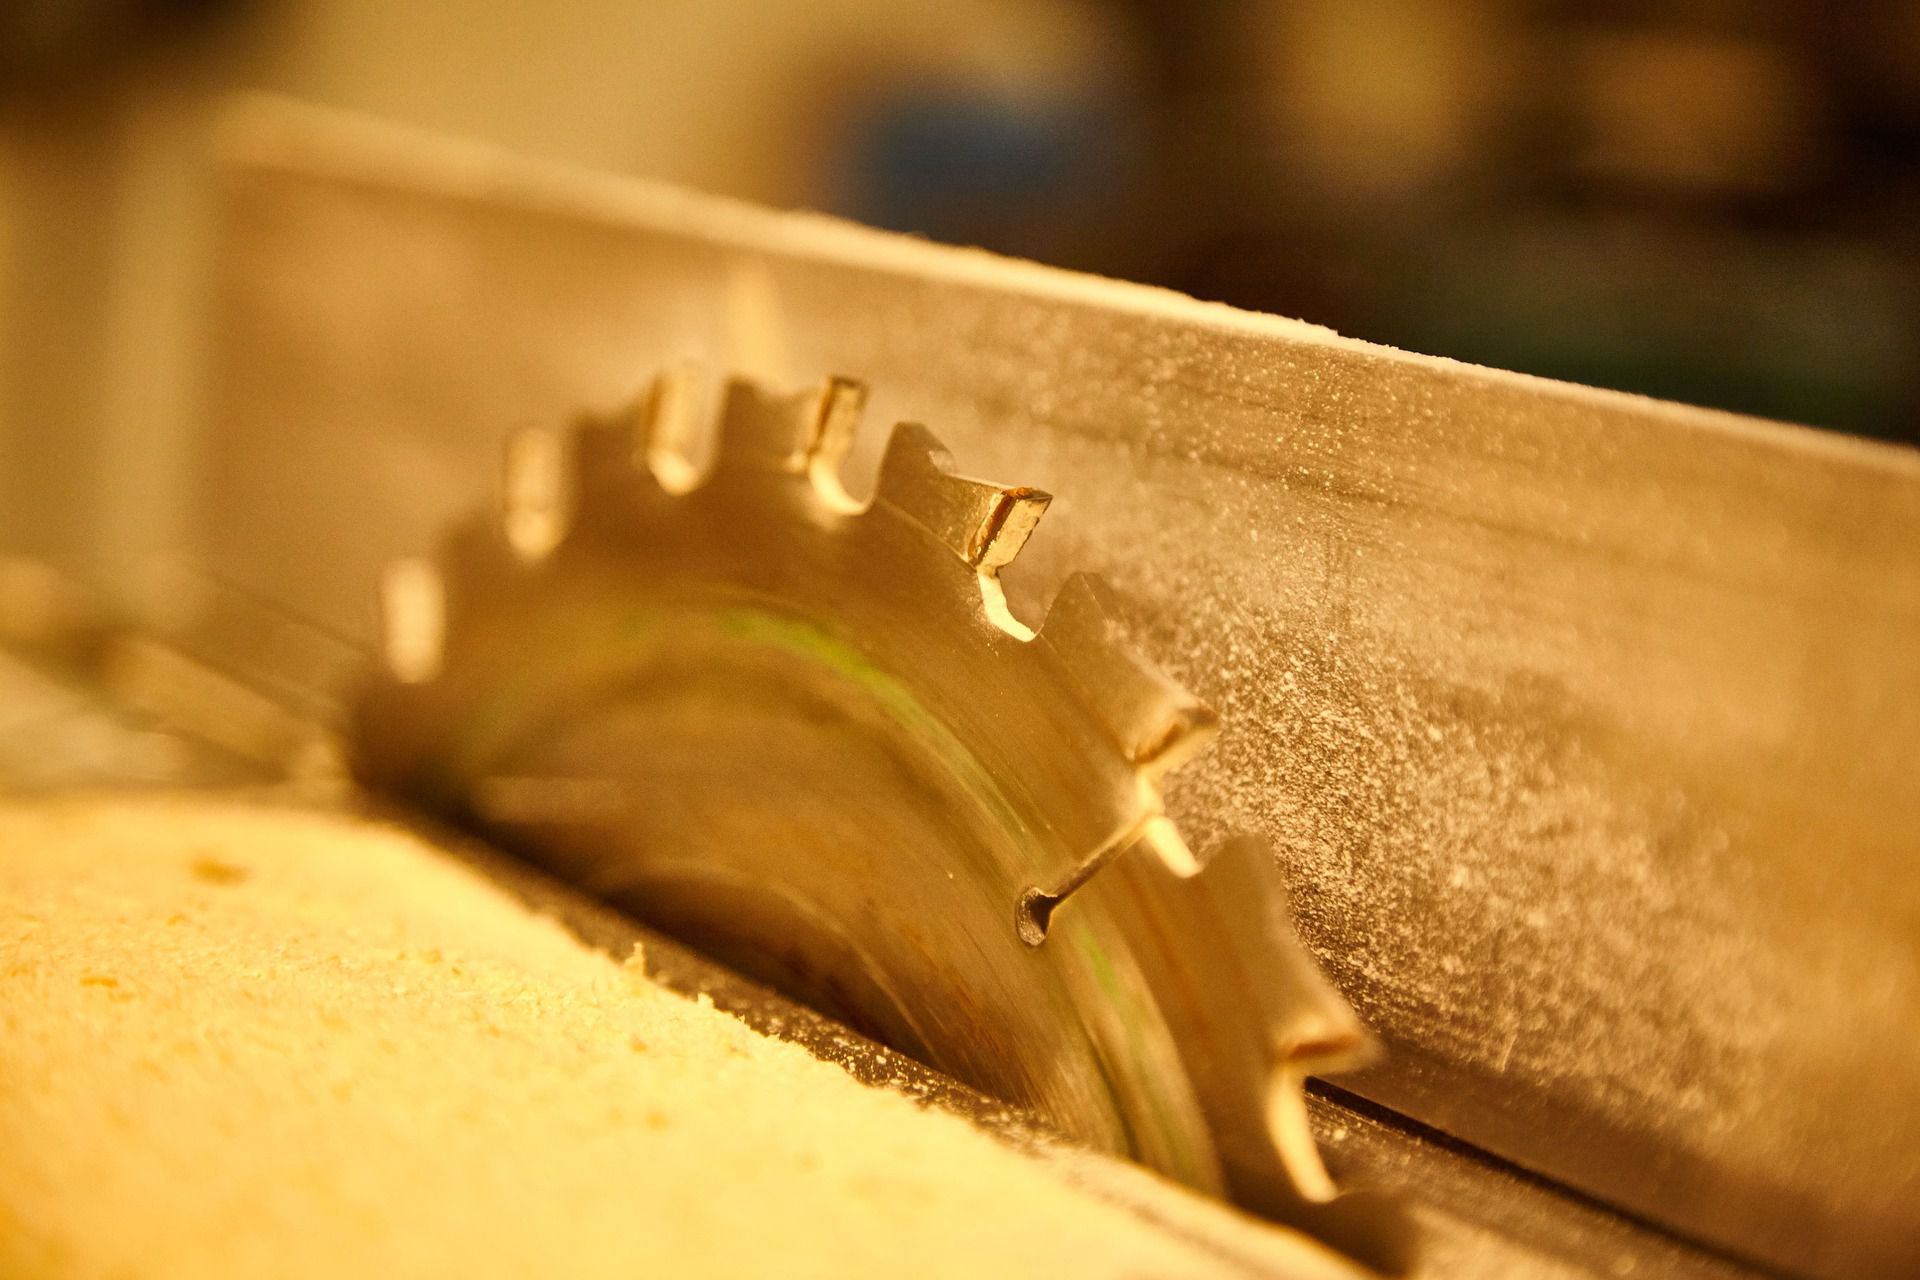 How To Prevent Saw Blade Burns On Wood